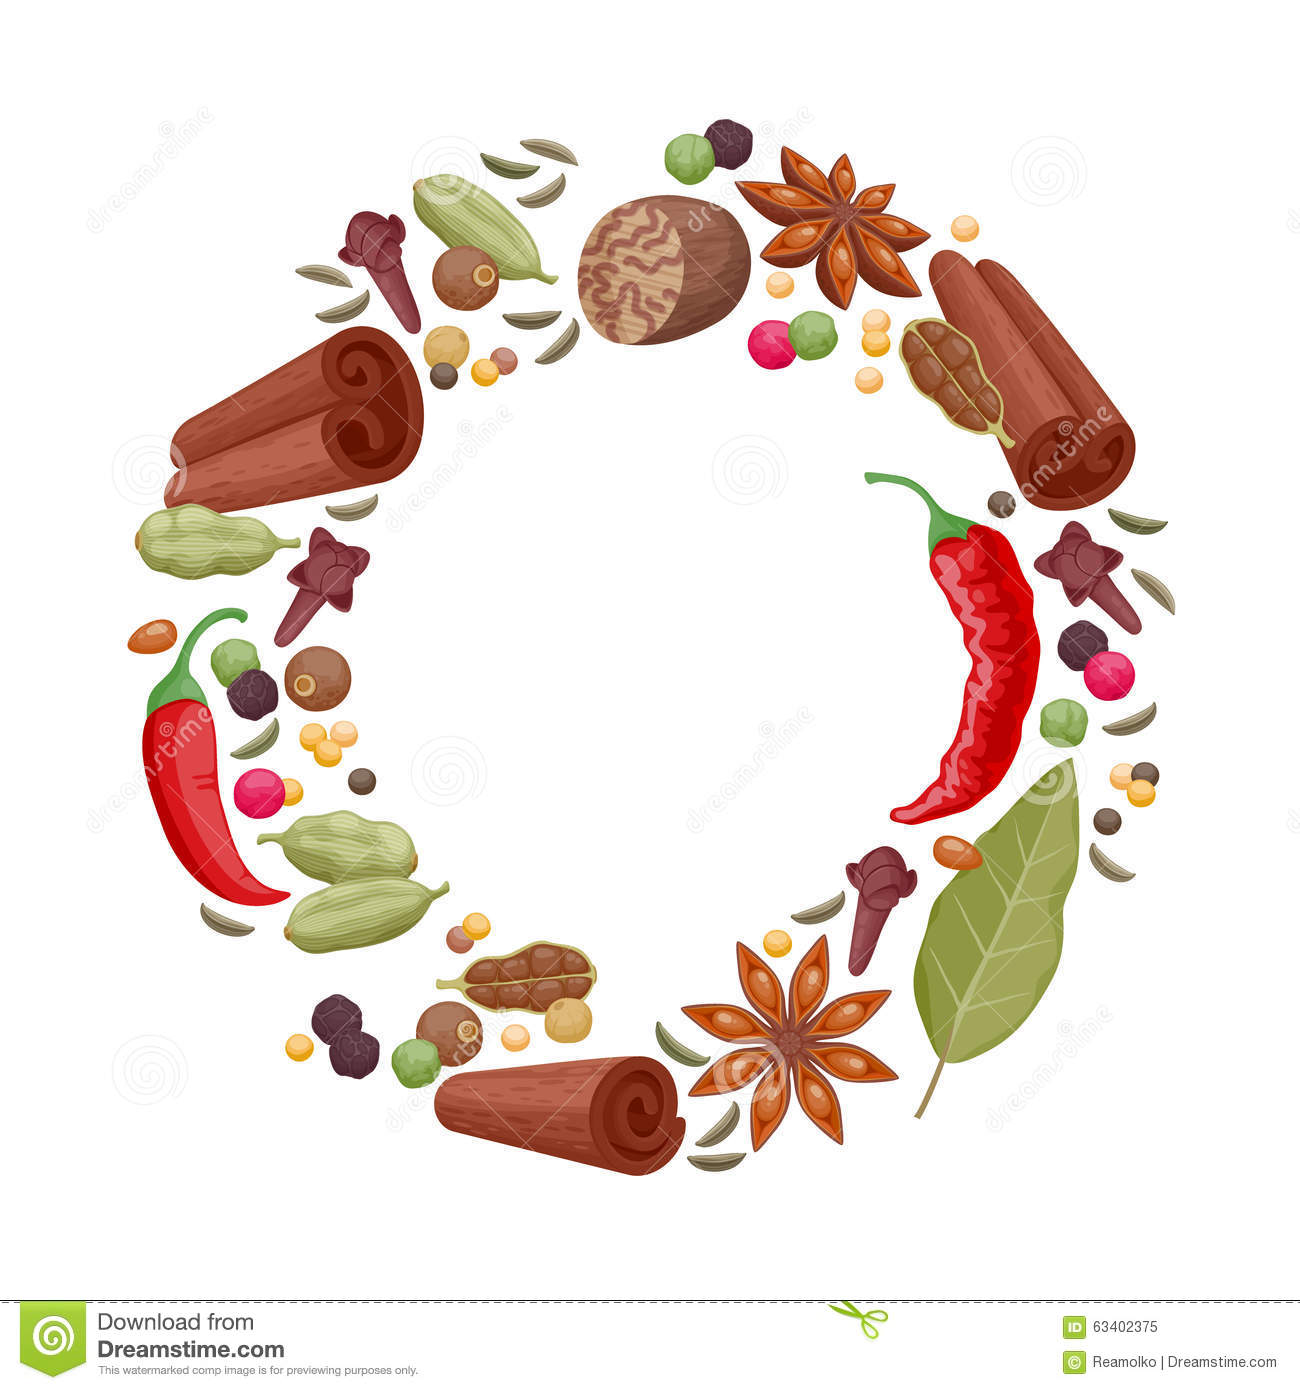 Spices And Herbs Icons Round Frame Illustration Stock Vector.